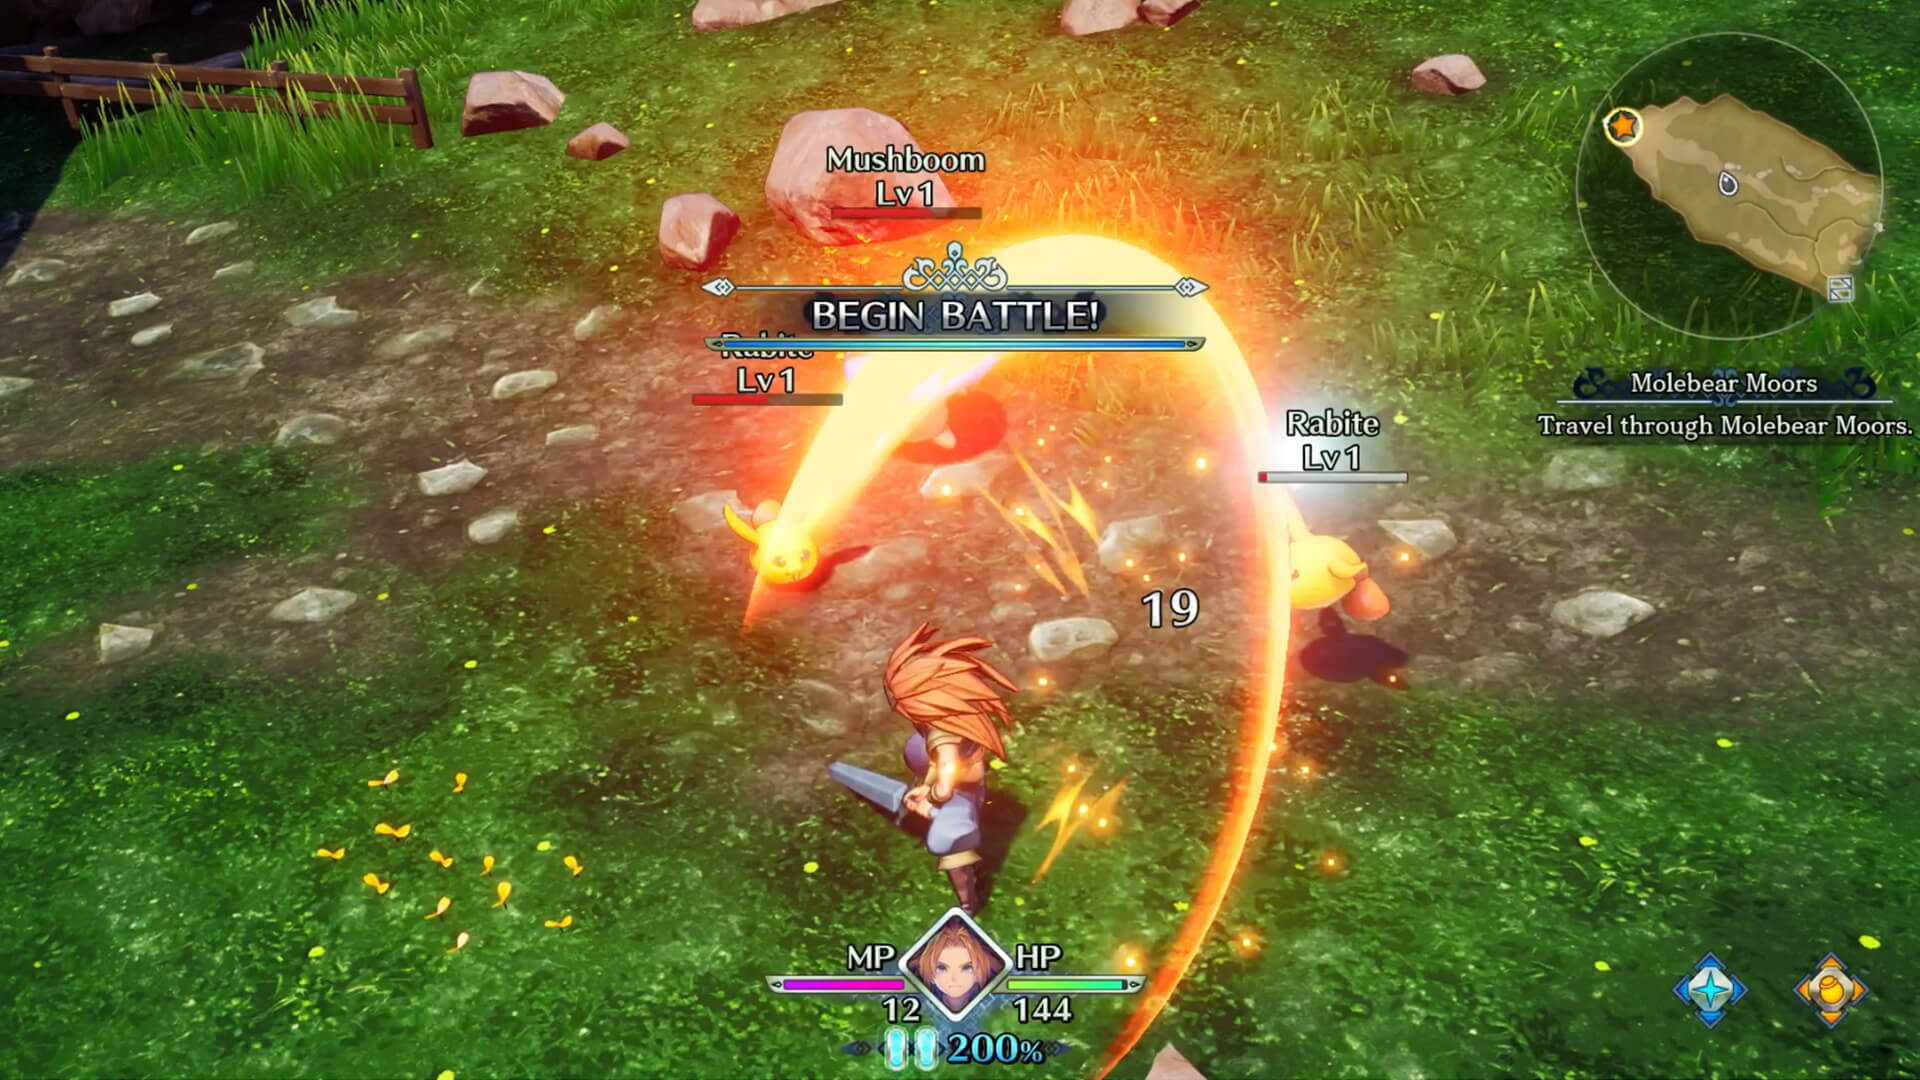 Trials of Mana Remake: Battle